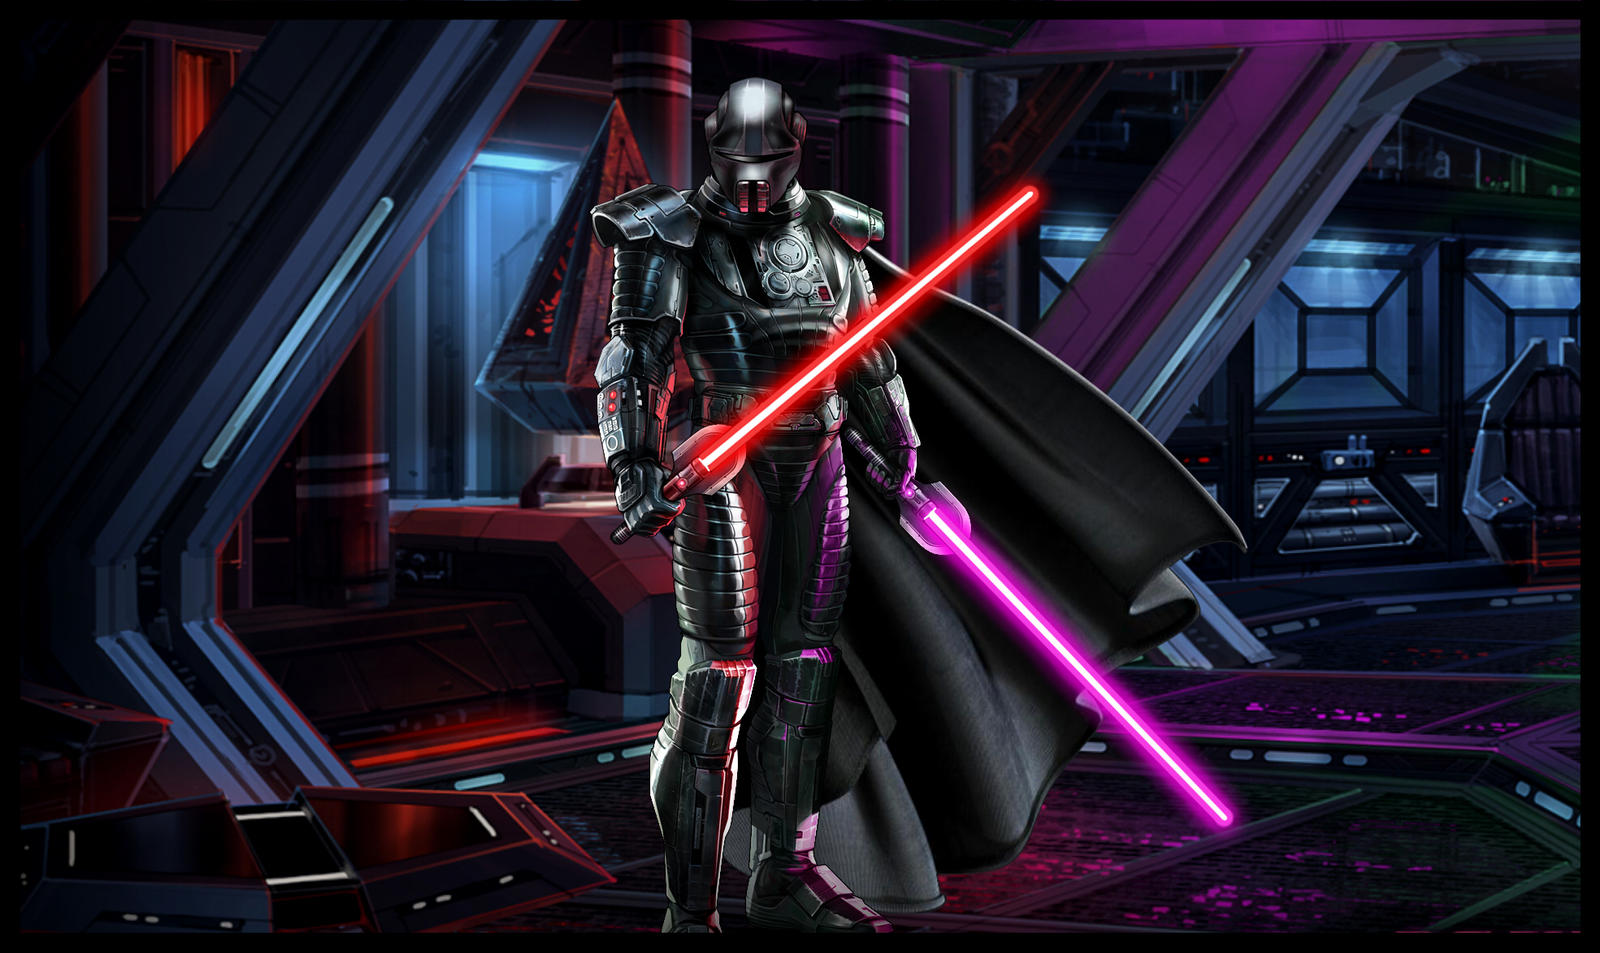 Sith Warrior by zardis1965